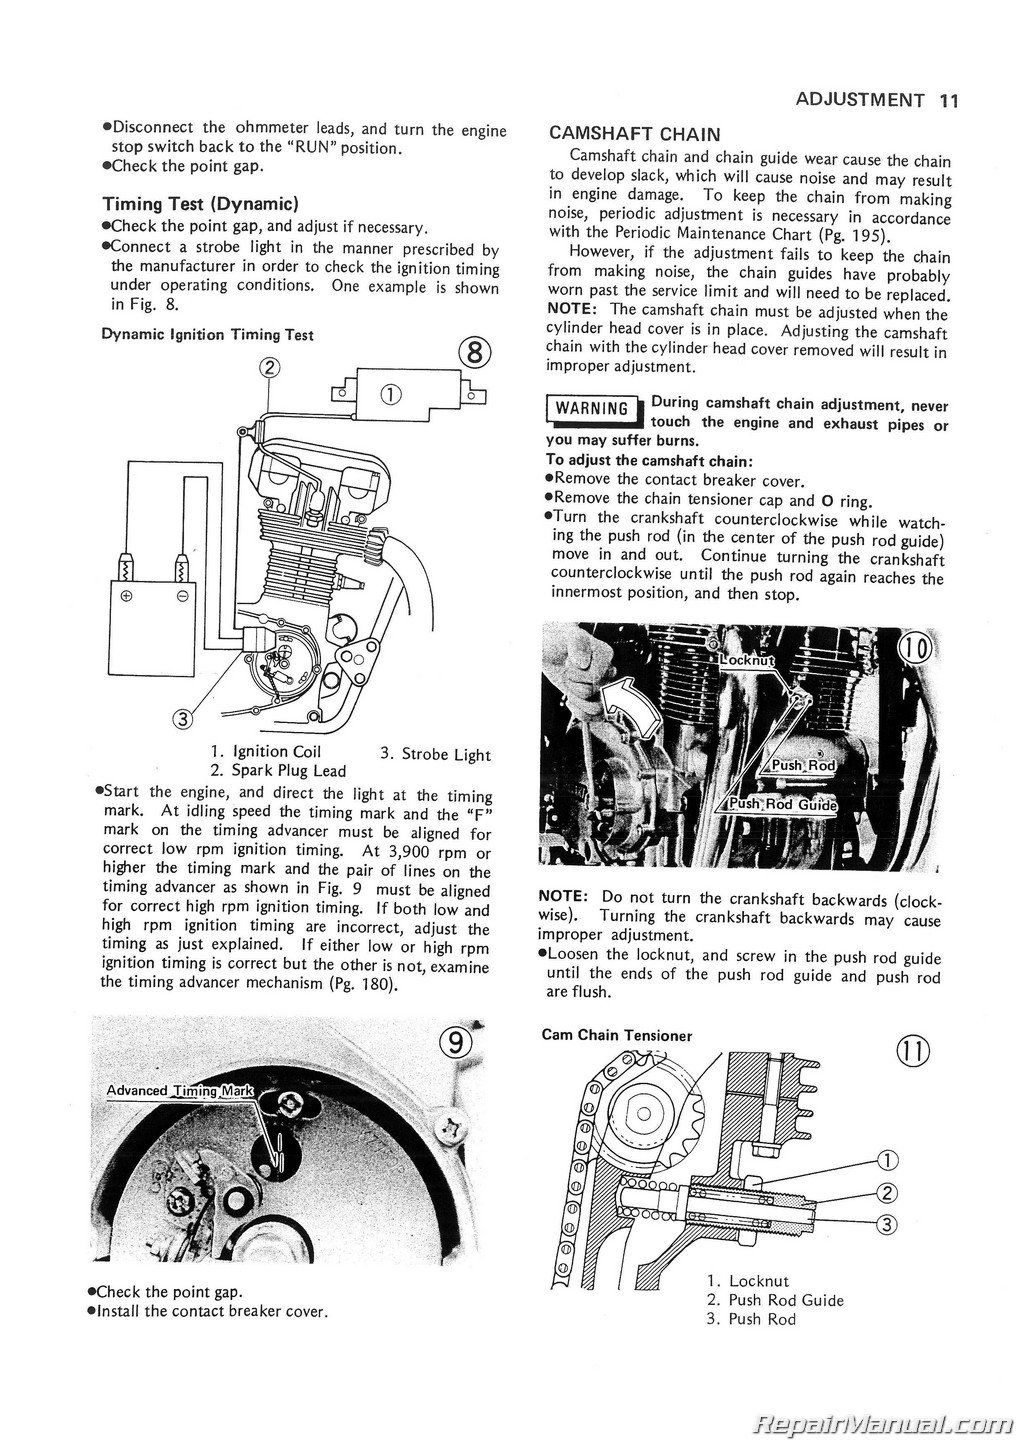 Gominichassisgokartparts furthermore Honda Crf150r Crf150rb Expert Cyclepedia Printed Service Manual moreover Official 1976 1979 Kawasaki Kz750 B Factory Service Manual 99997 744 04 in addition Schematics furthermore Dayco Belts Cross Reference. on atv lawn mower